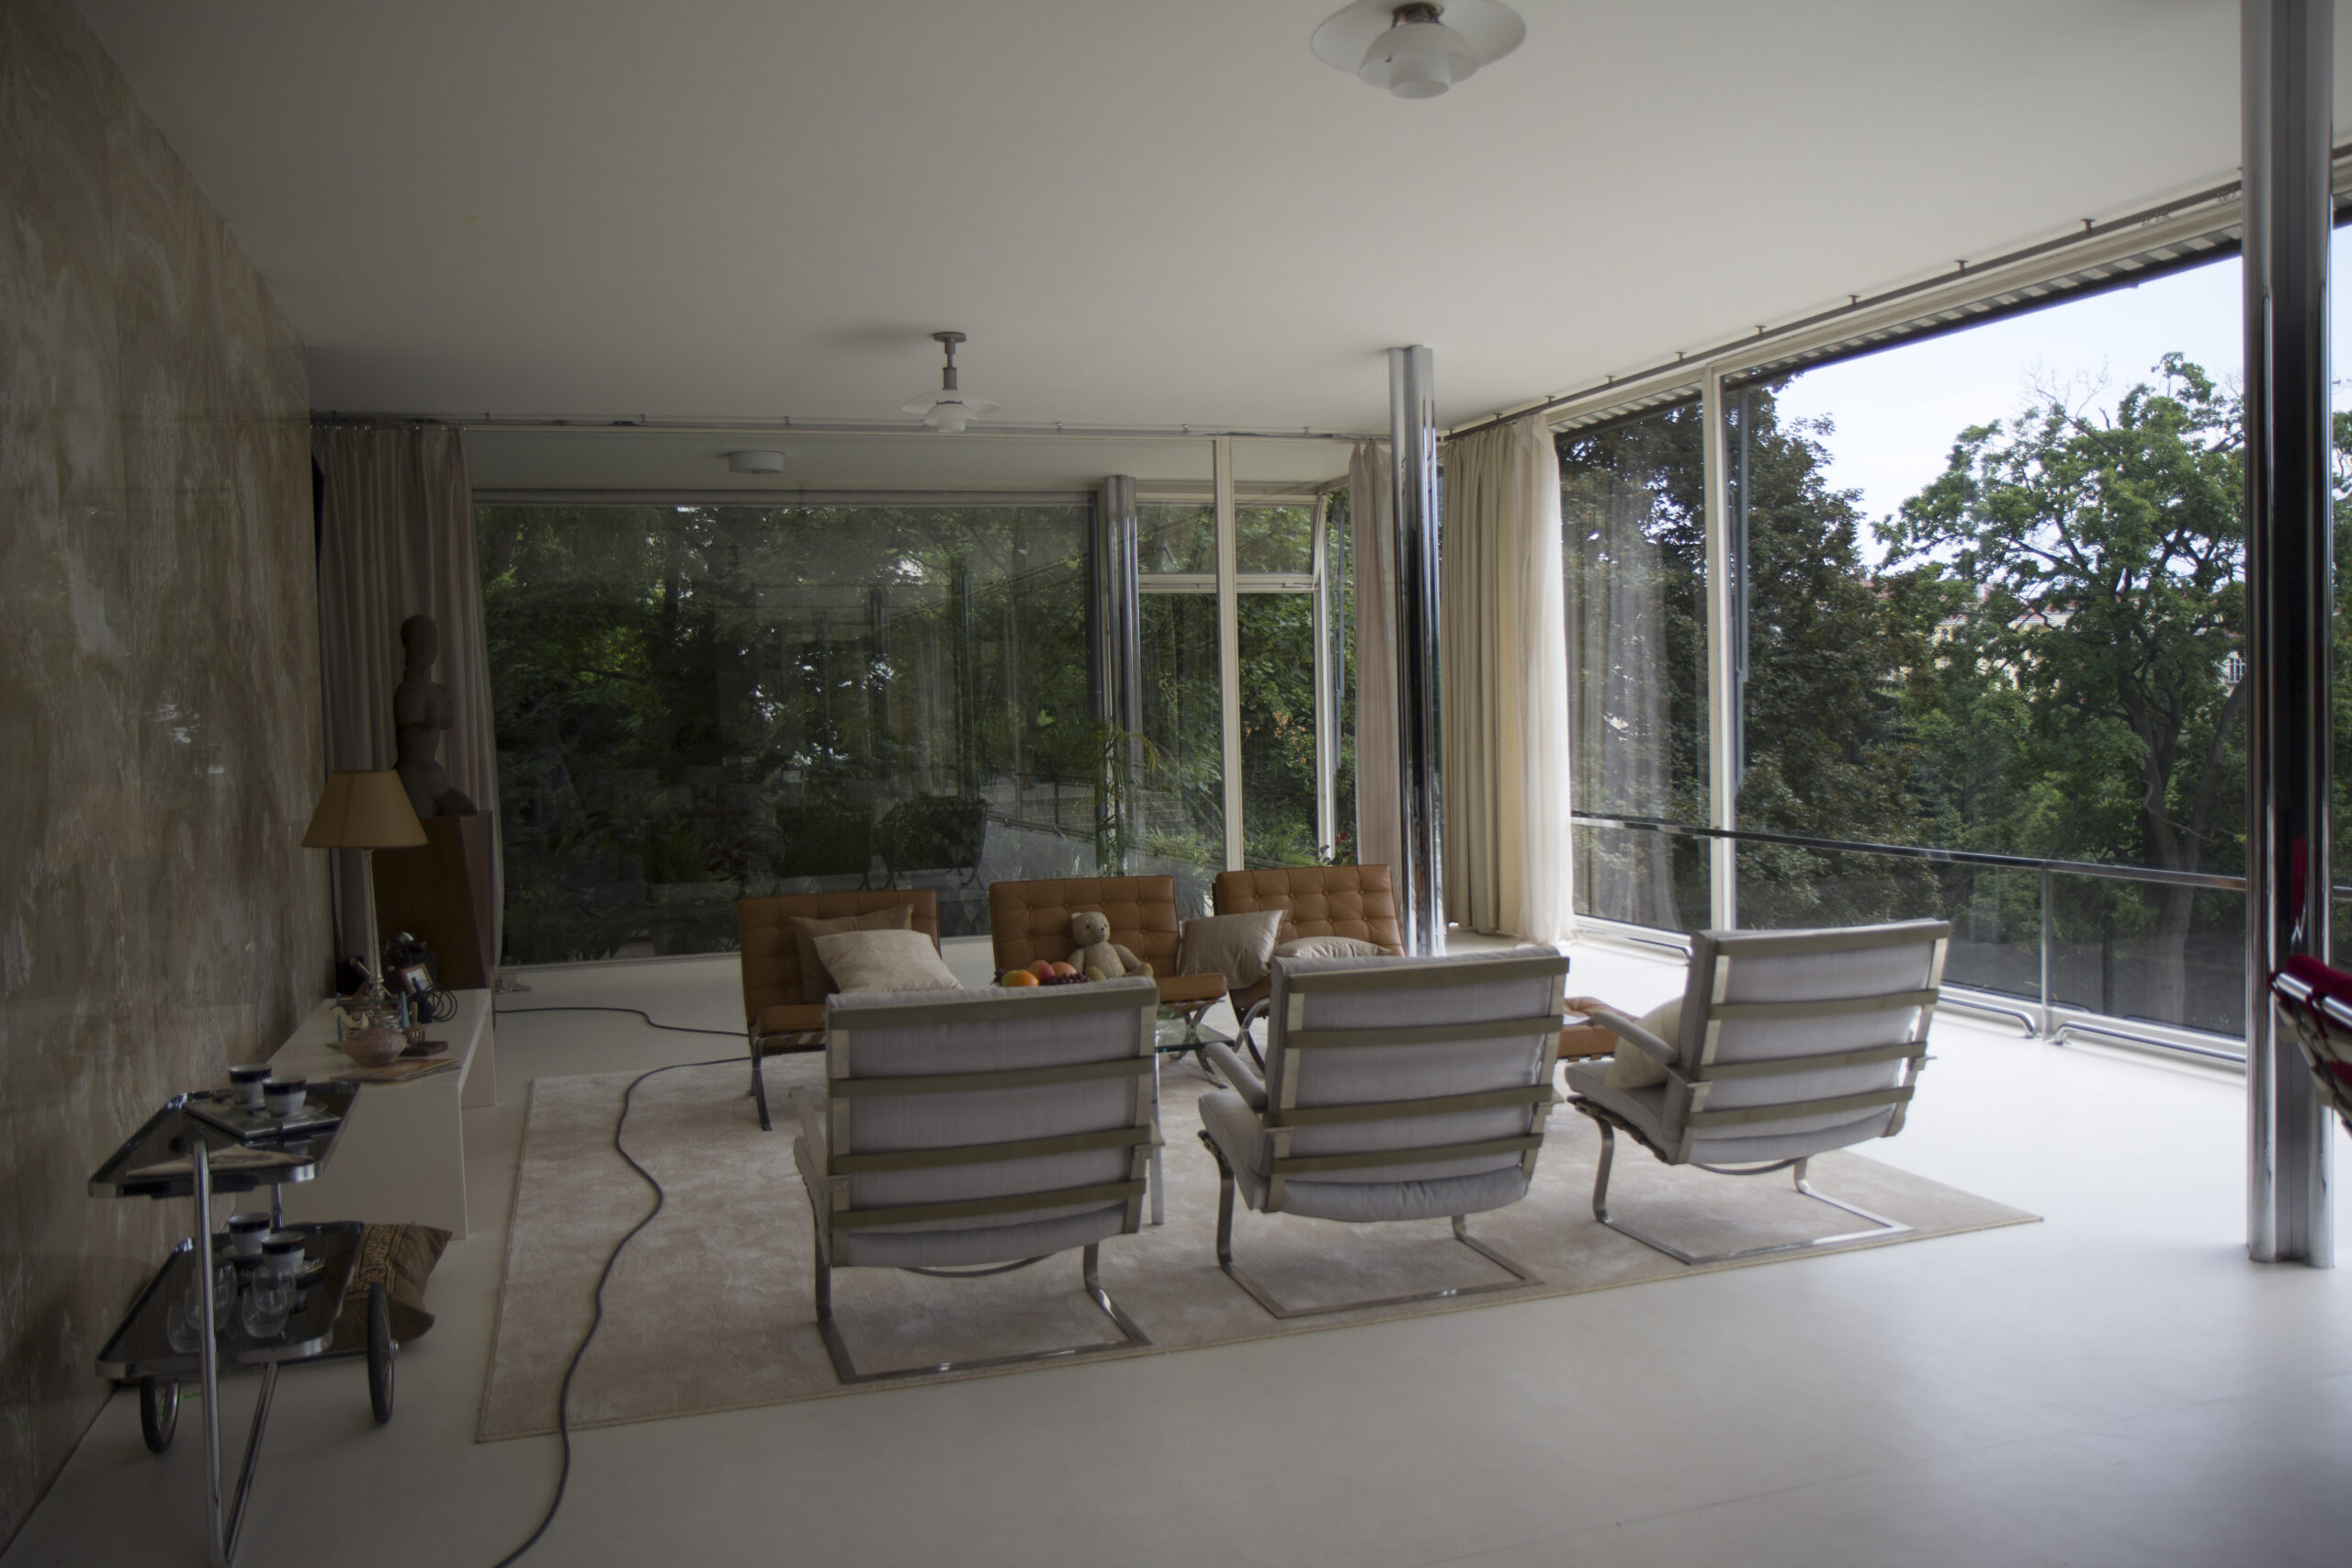 Tugendhat Chair by Mies van der Rohe